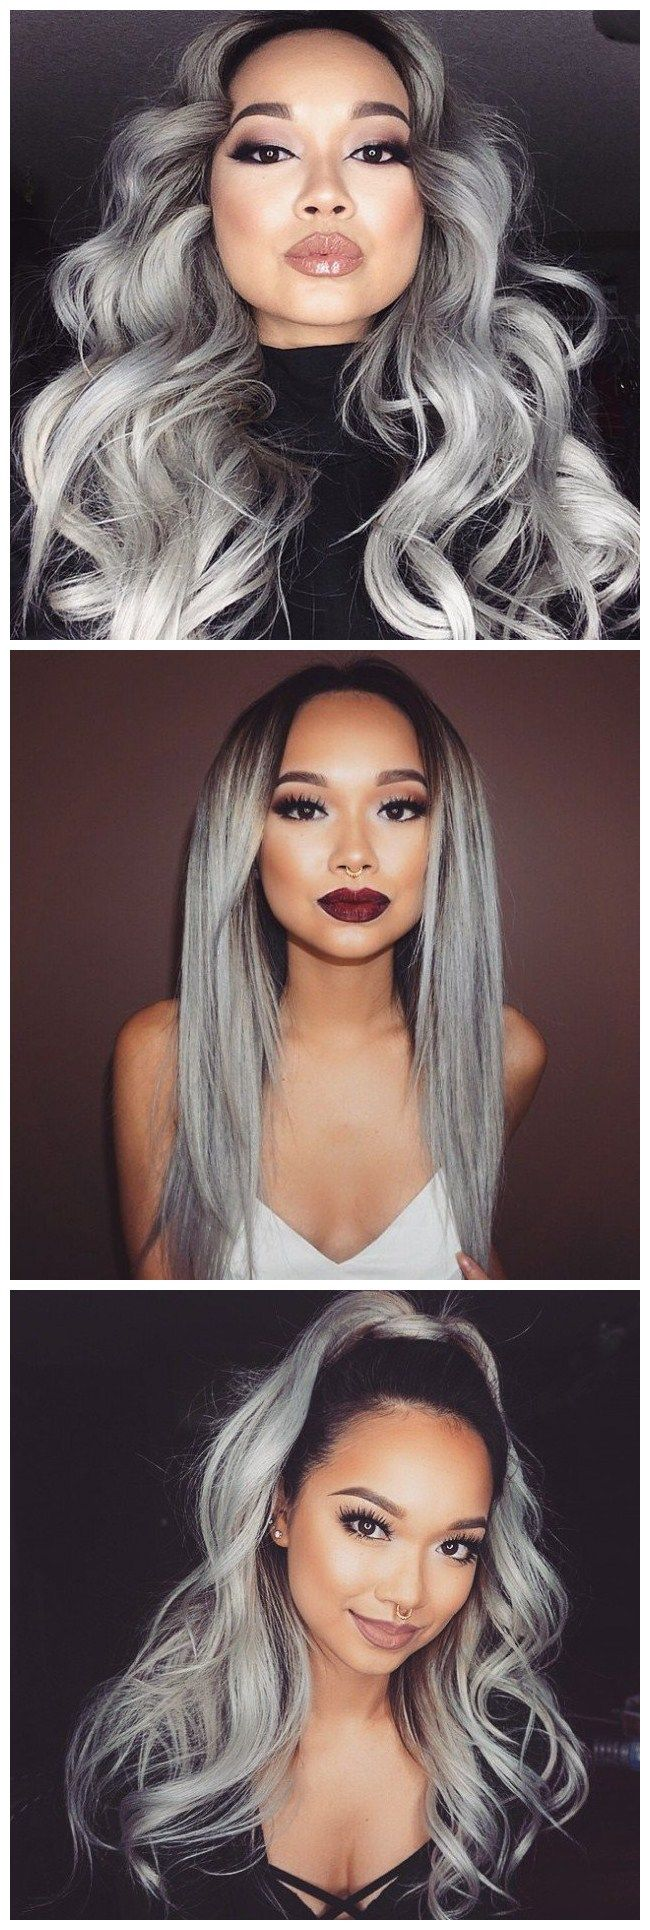 Wanna this grandma grey hair to hit in the summer time, check out our amazing good quality Grey Hair Weaves to style your hairstyle